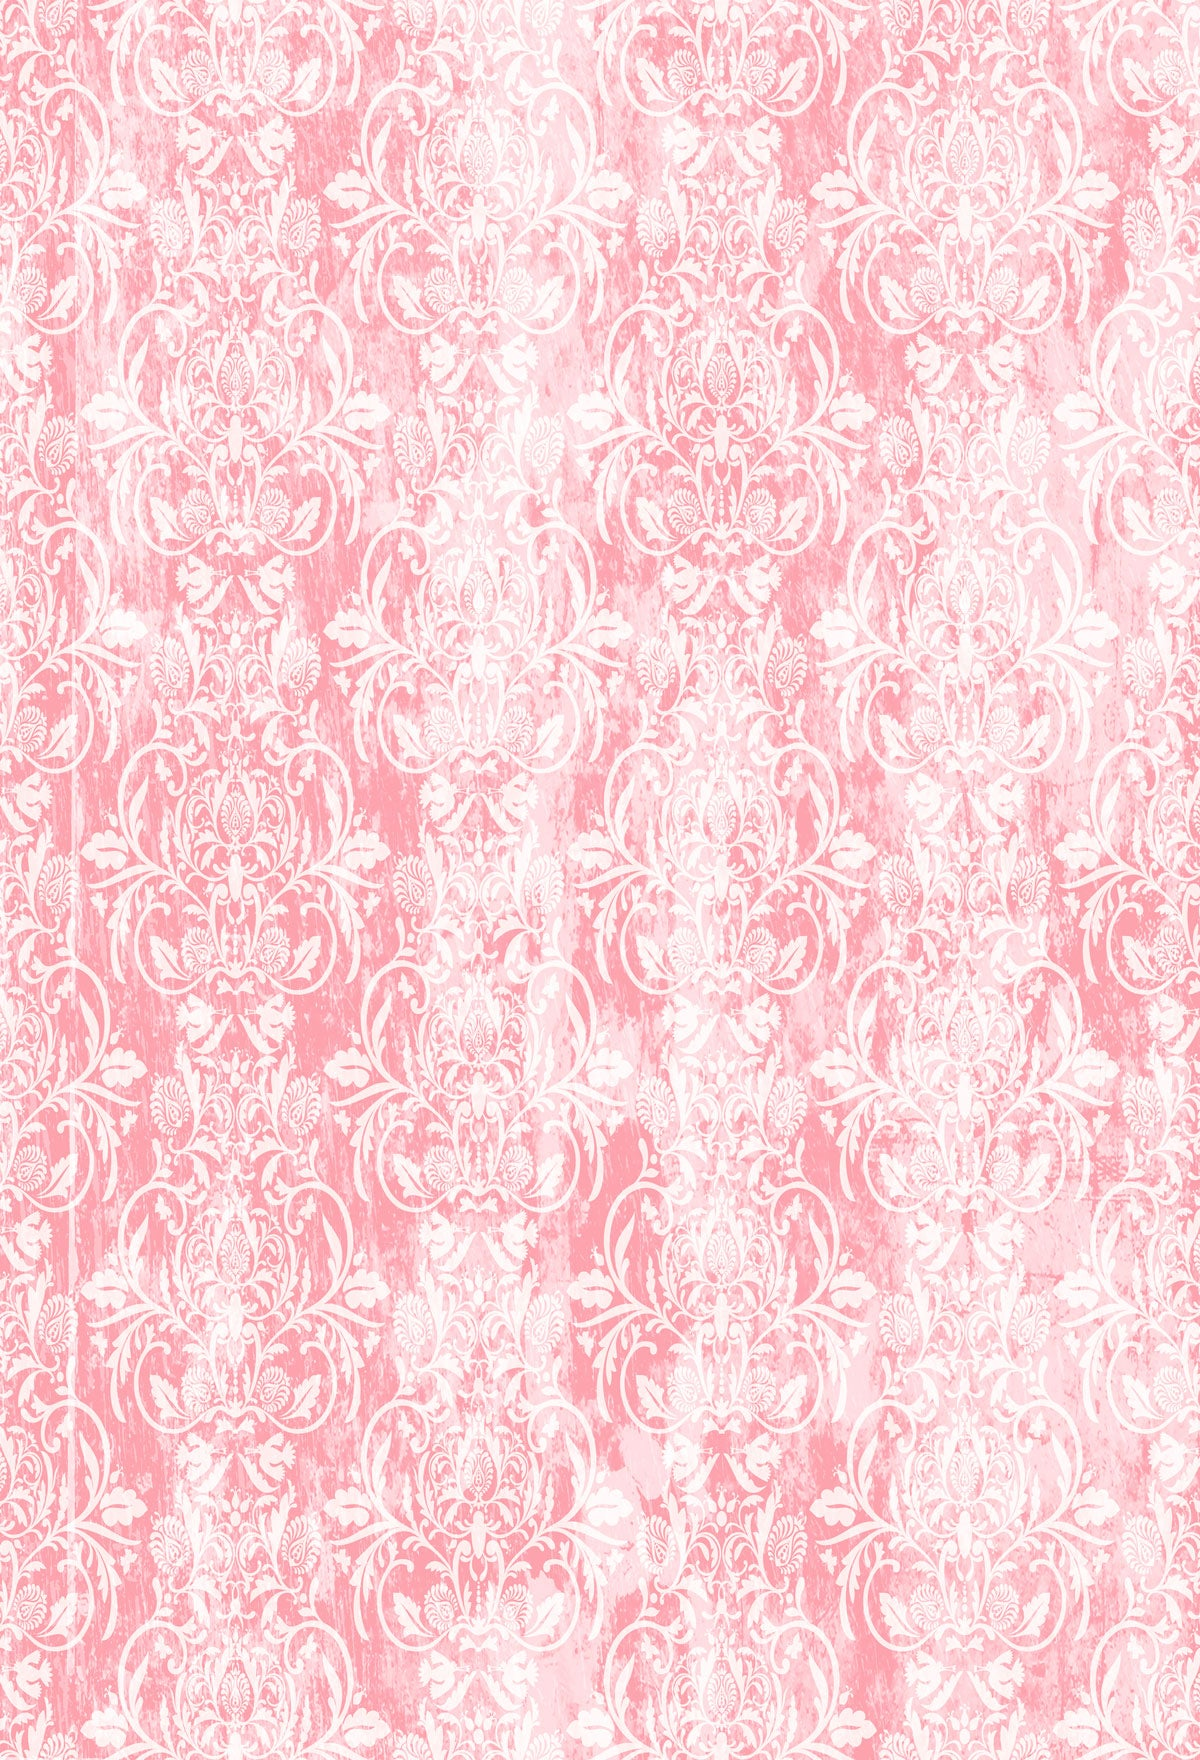 Fox Pink Pattern Vinyl Backdrop for Photography-Foxbackdrop